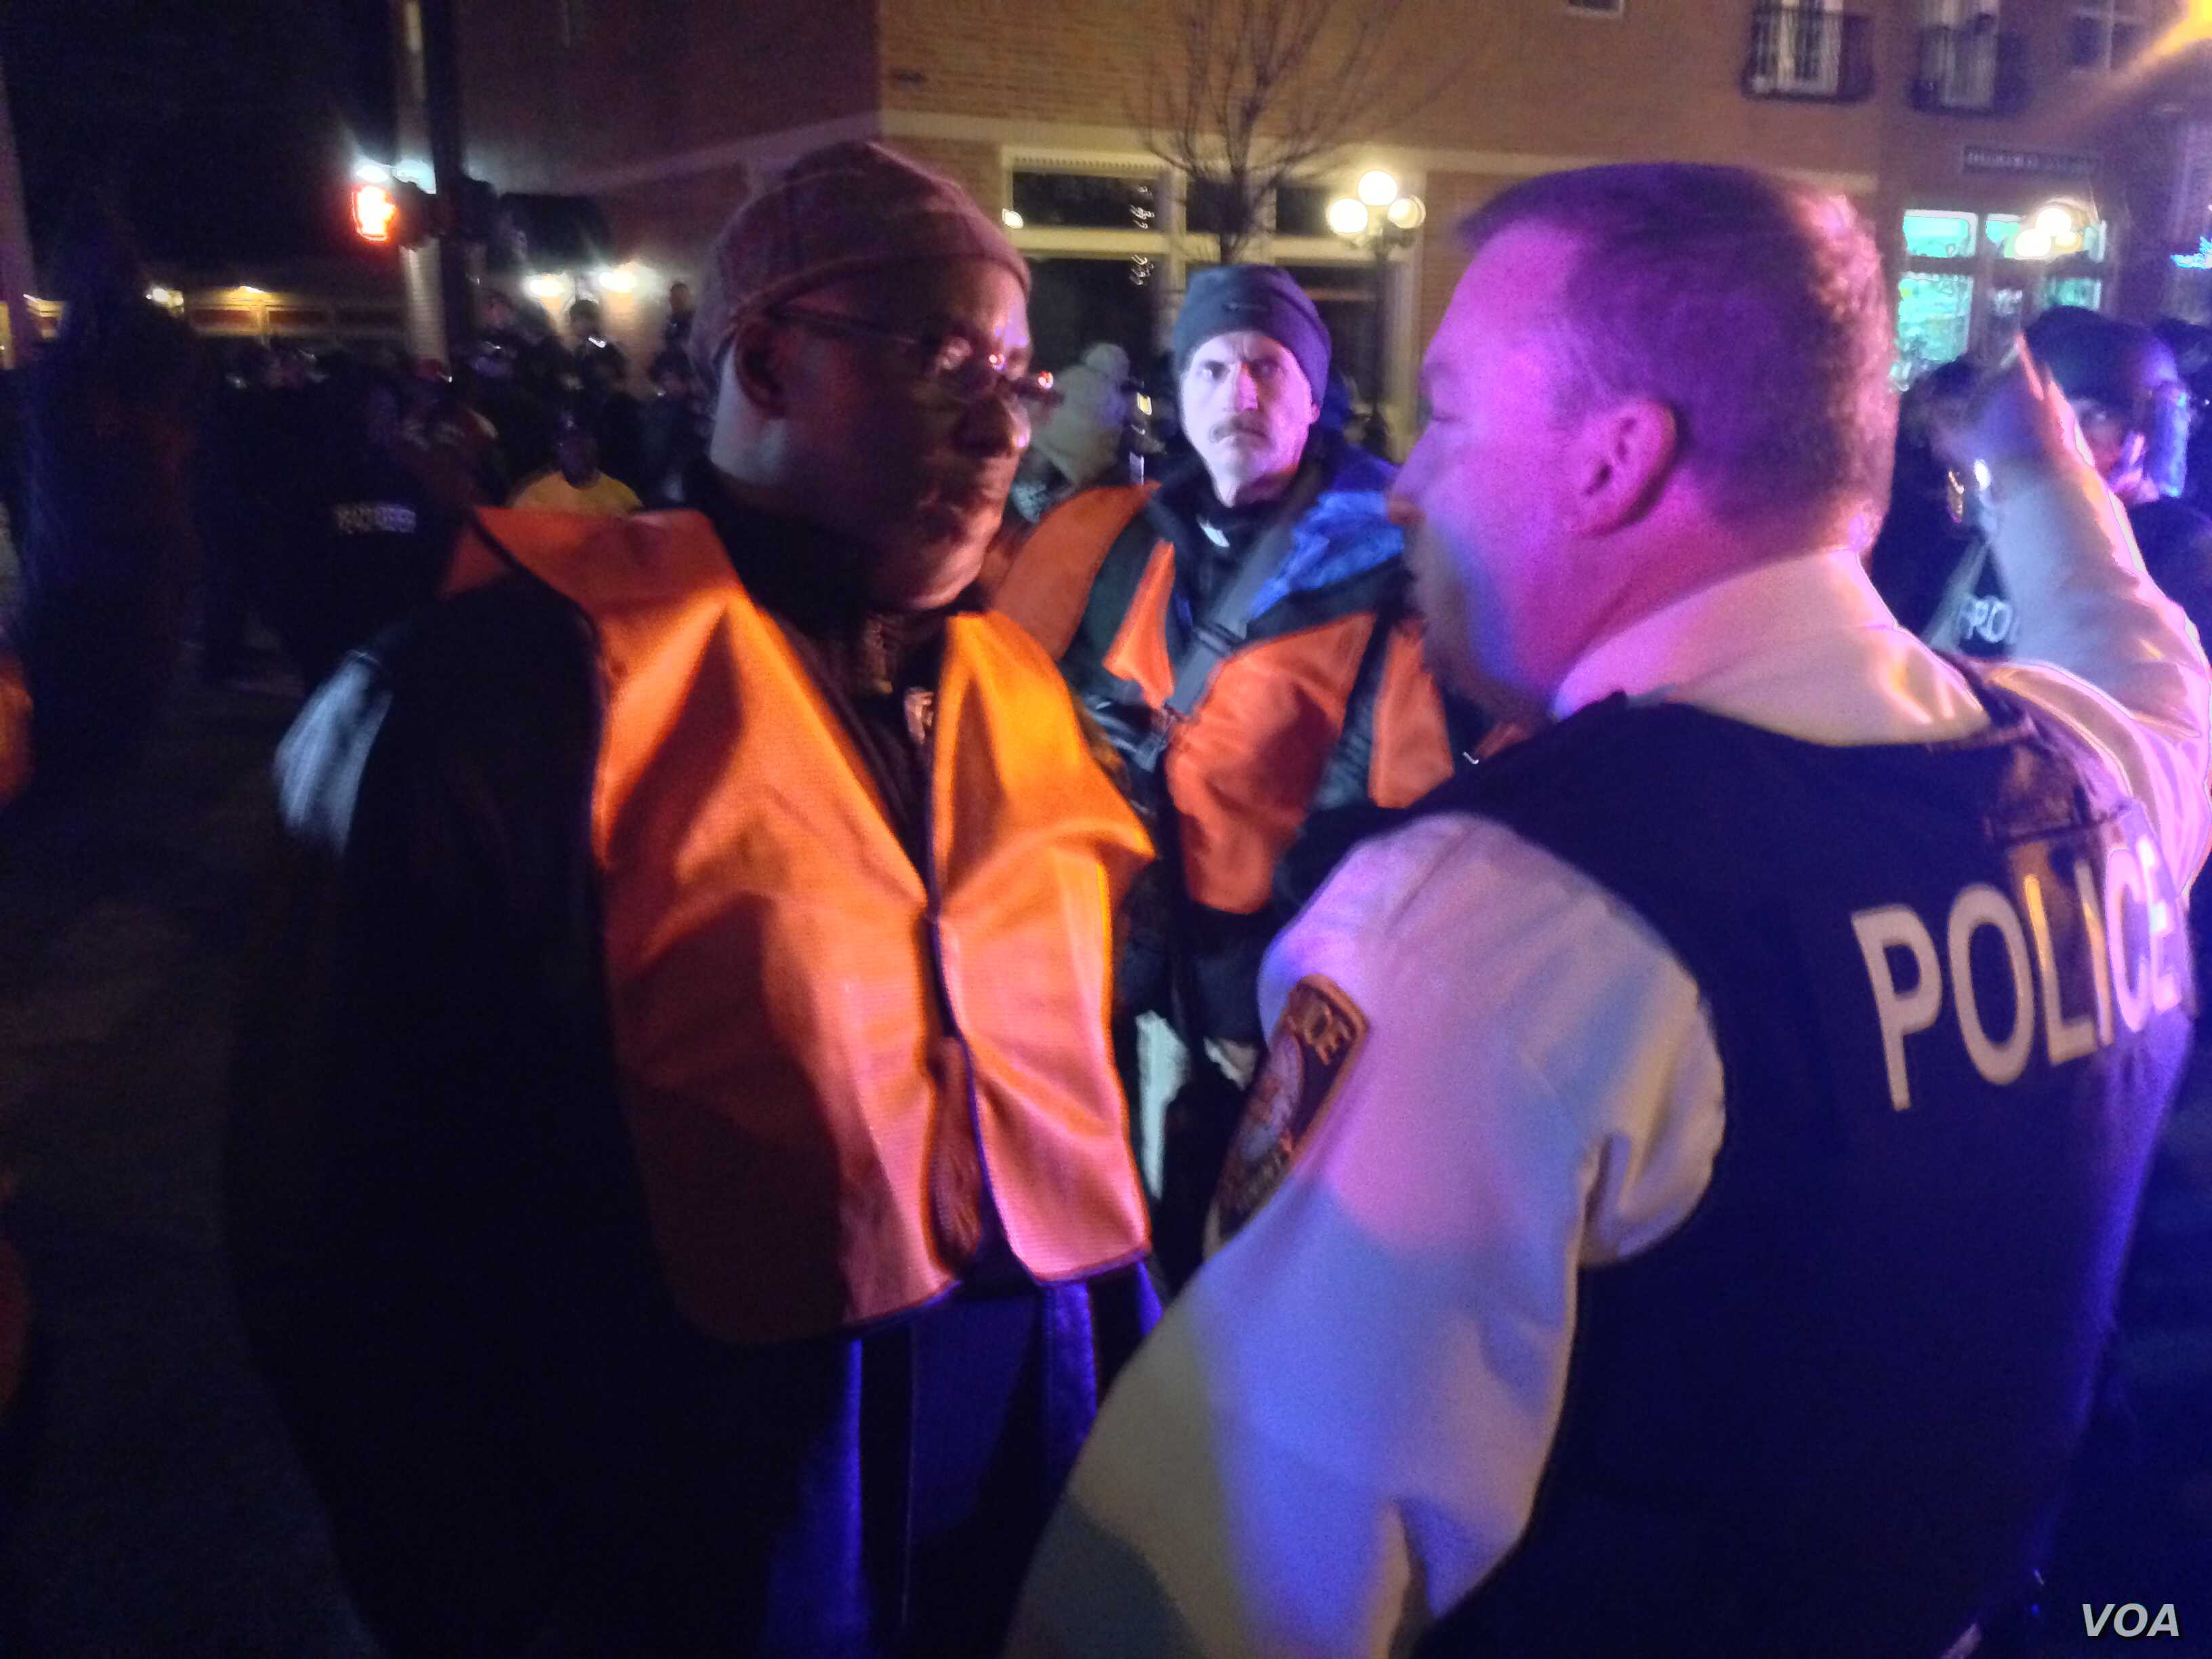 Unrest on the streets of Ferguson after a grand jury decided not to indict police officer Darren Wilson in the death of Michael Brown, Ferguson, Missouri, Nov. 24, 2014.  (Kane Farabuagh/VOA)